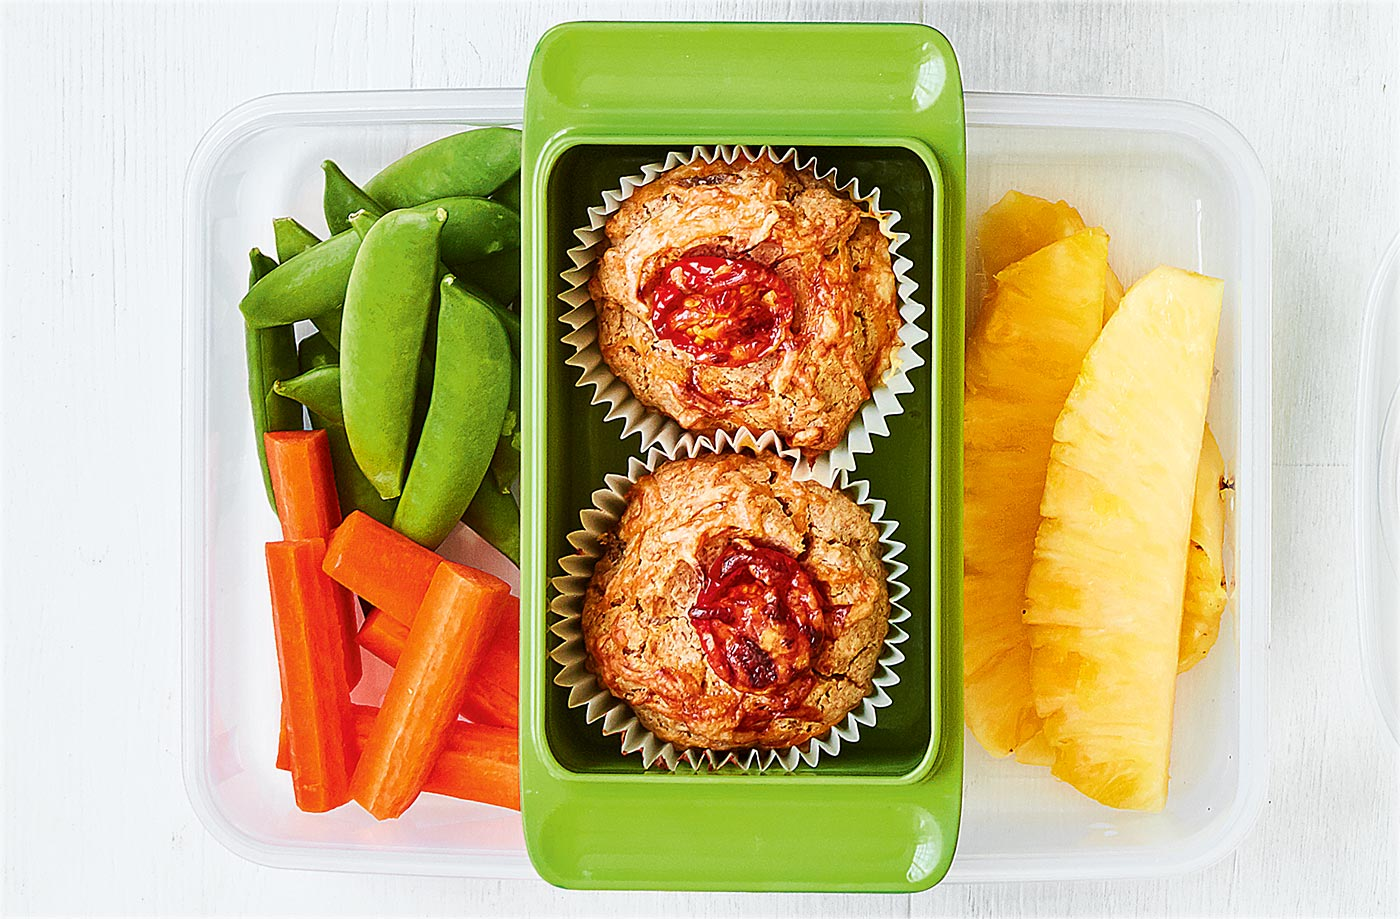 Tomato and bacon muffins